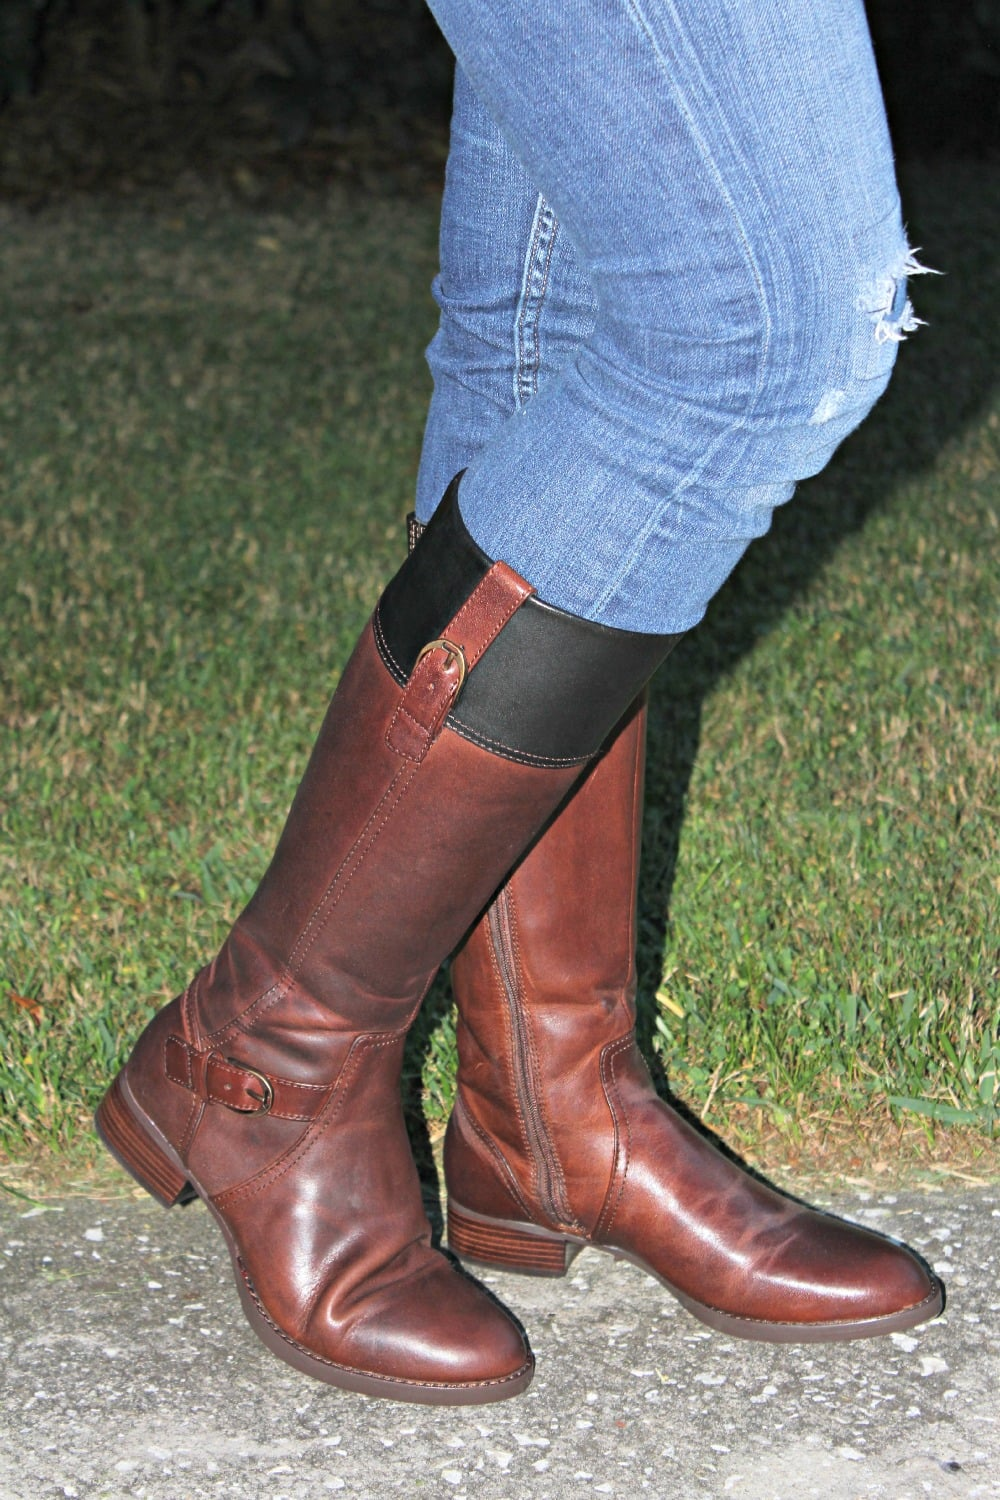 riding boots, how to wear riding boots